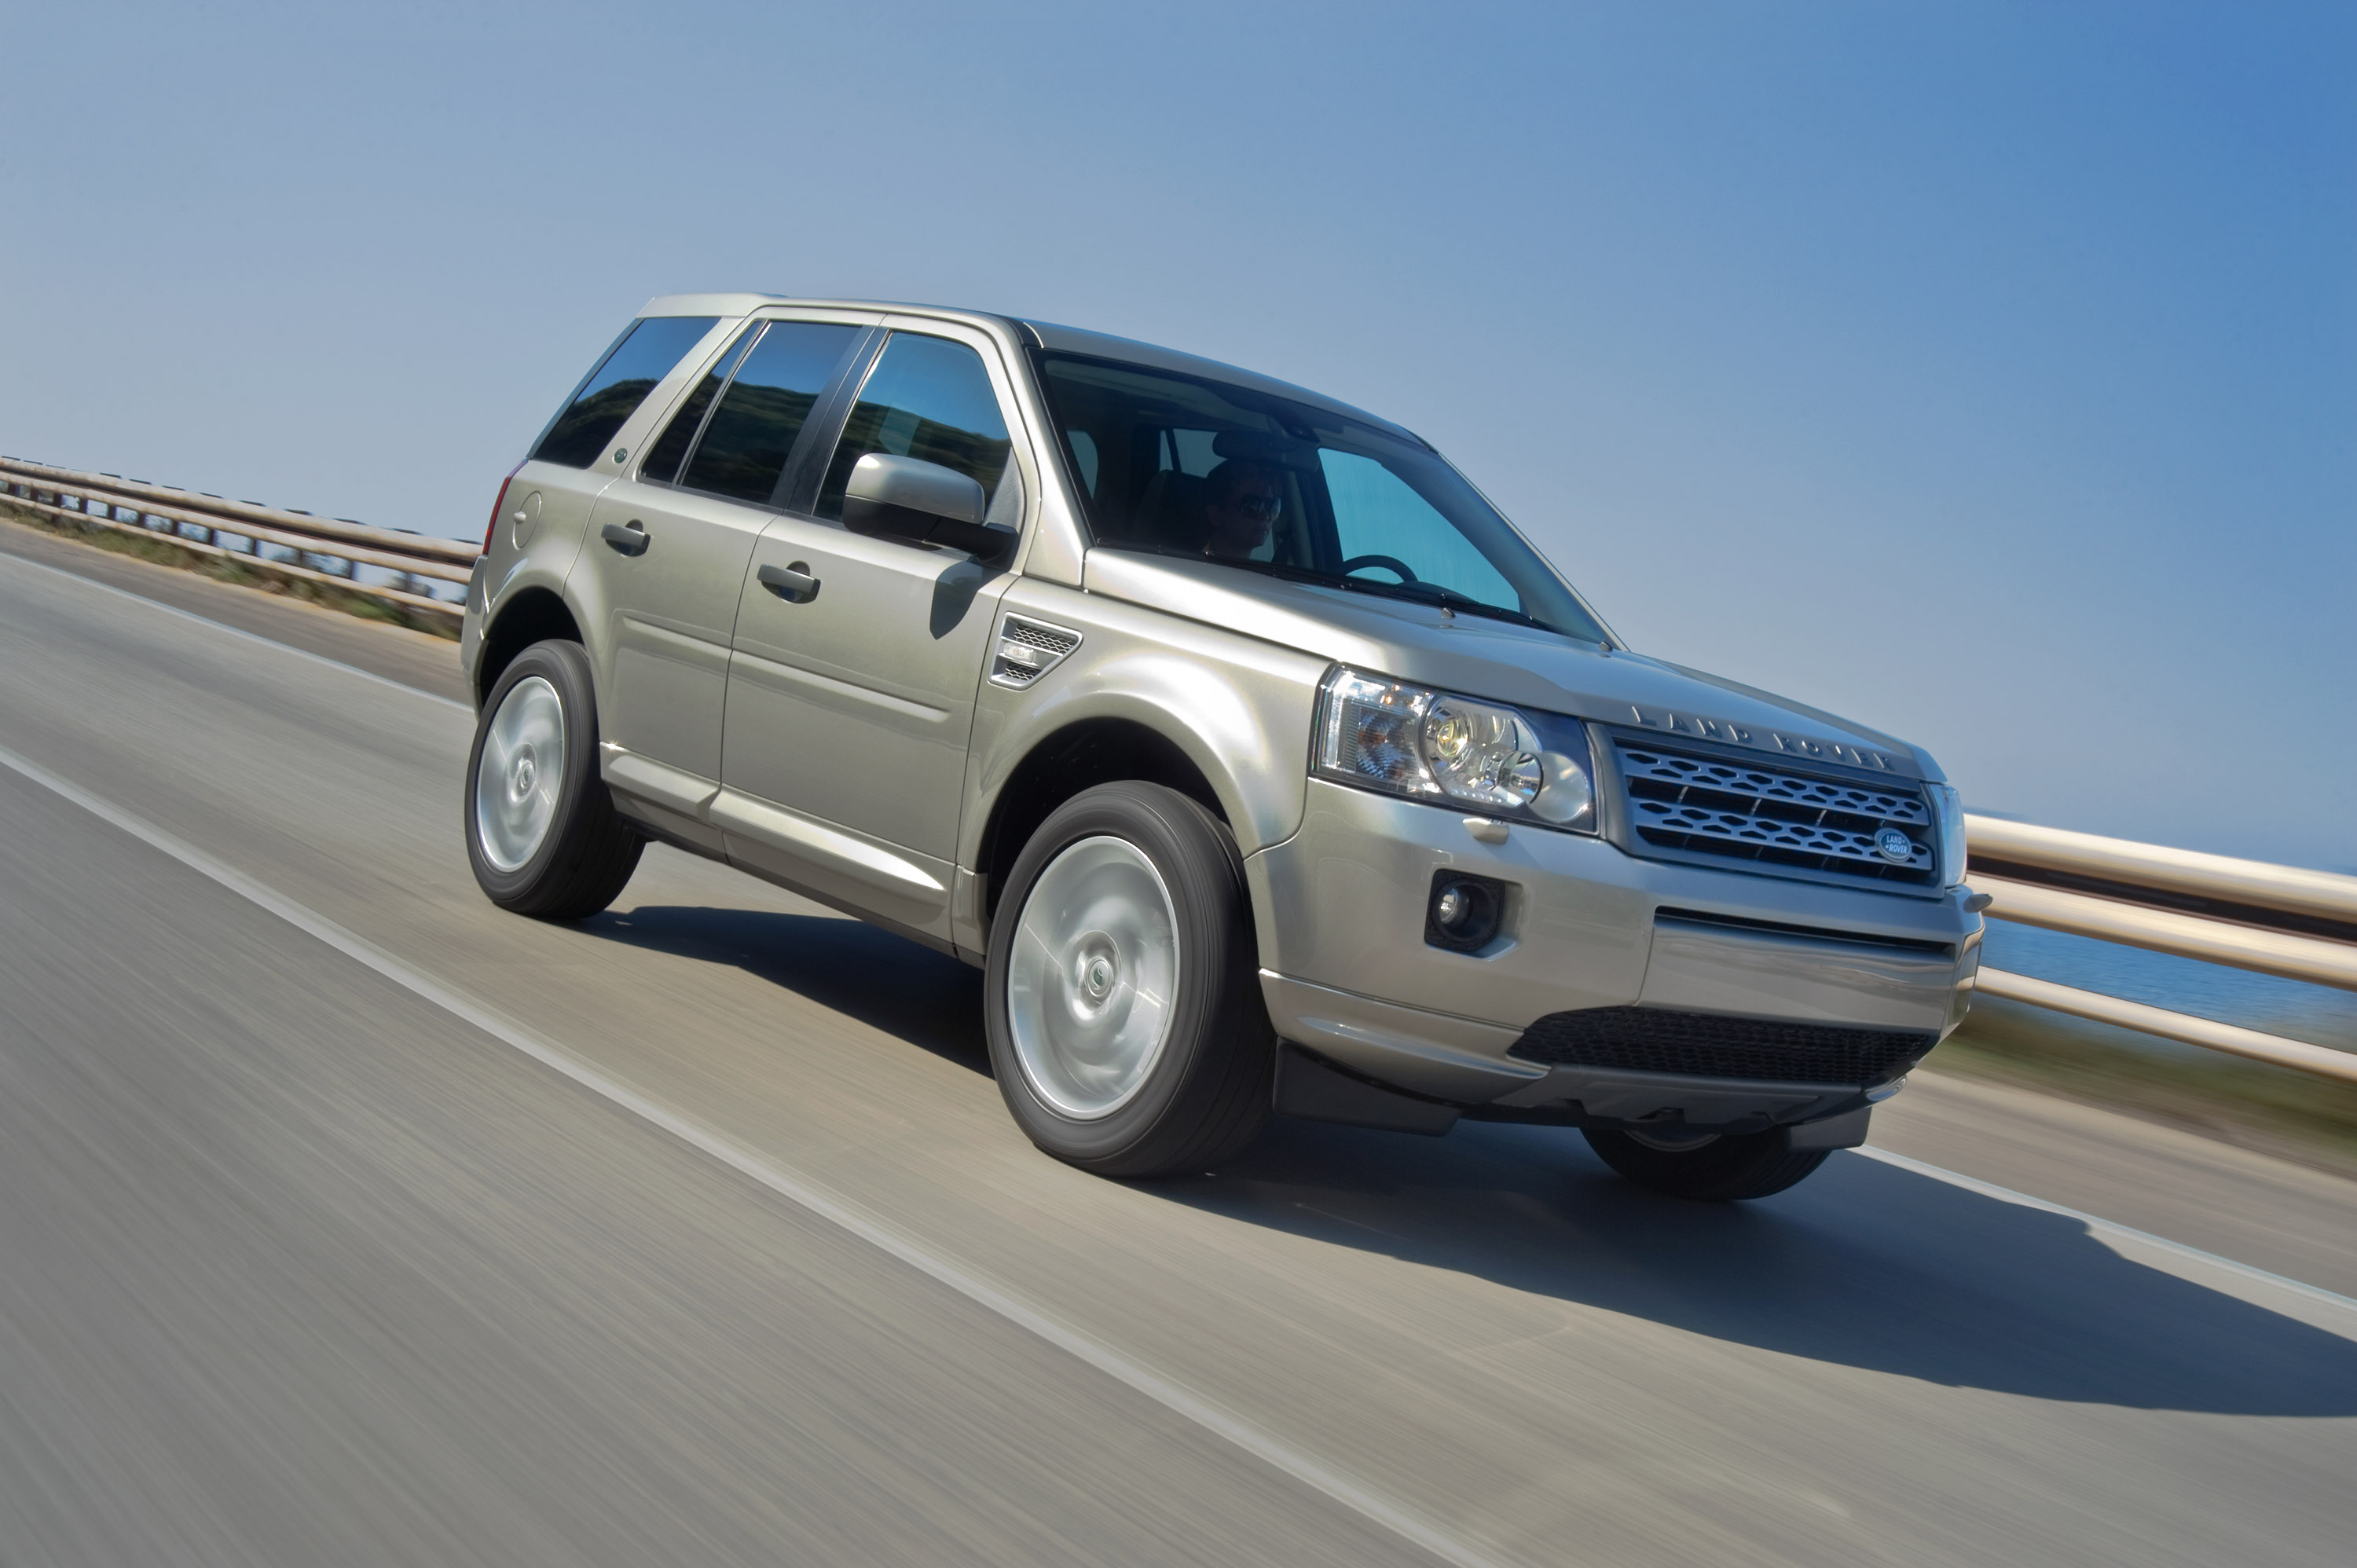 2011 Land Rover Freelander 2 - full details and specification